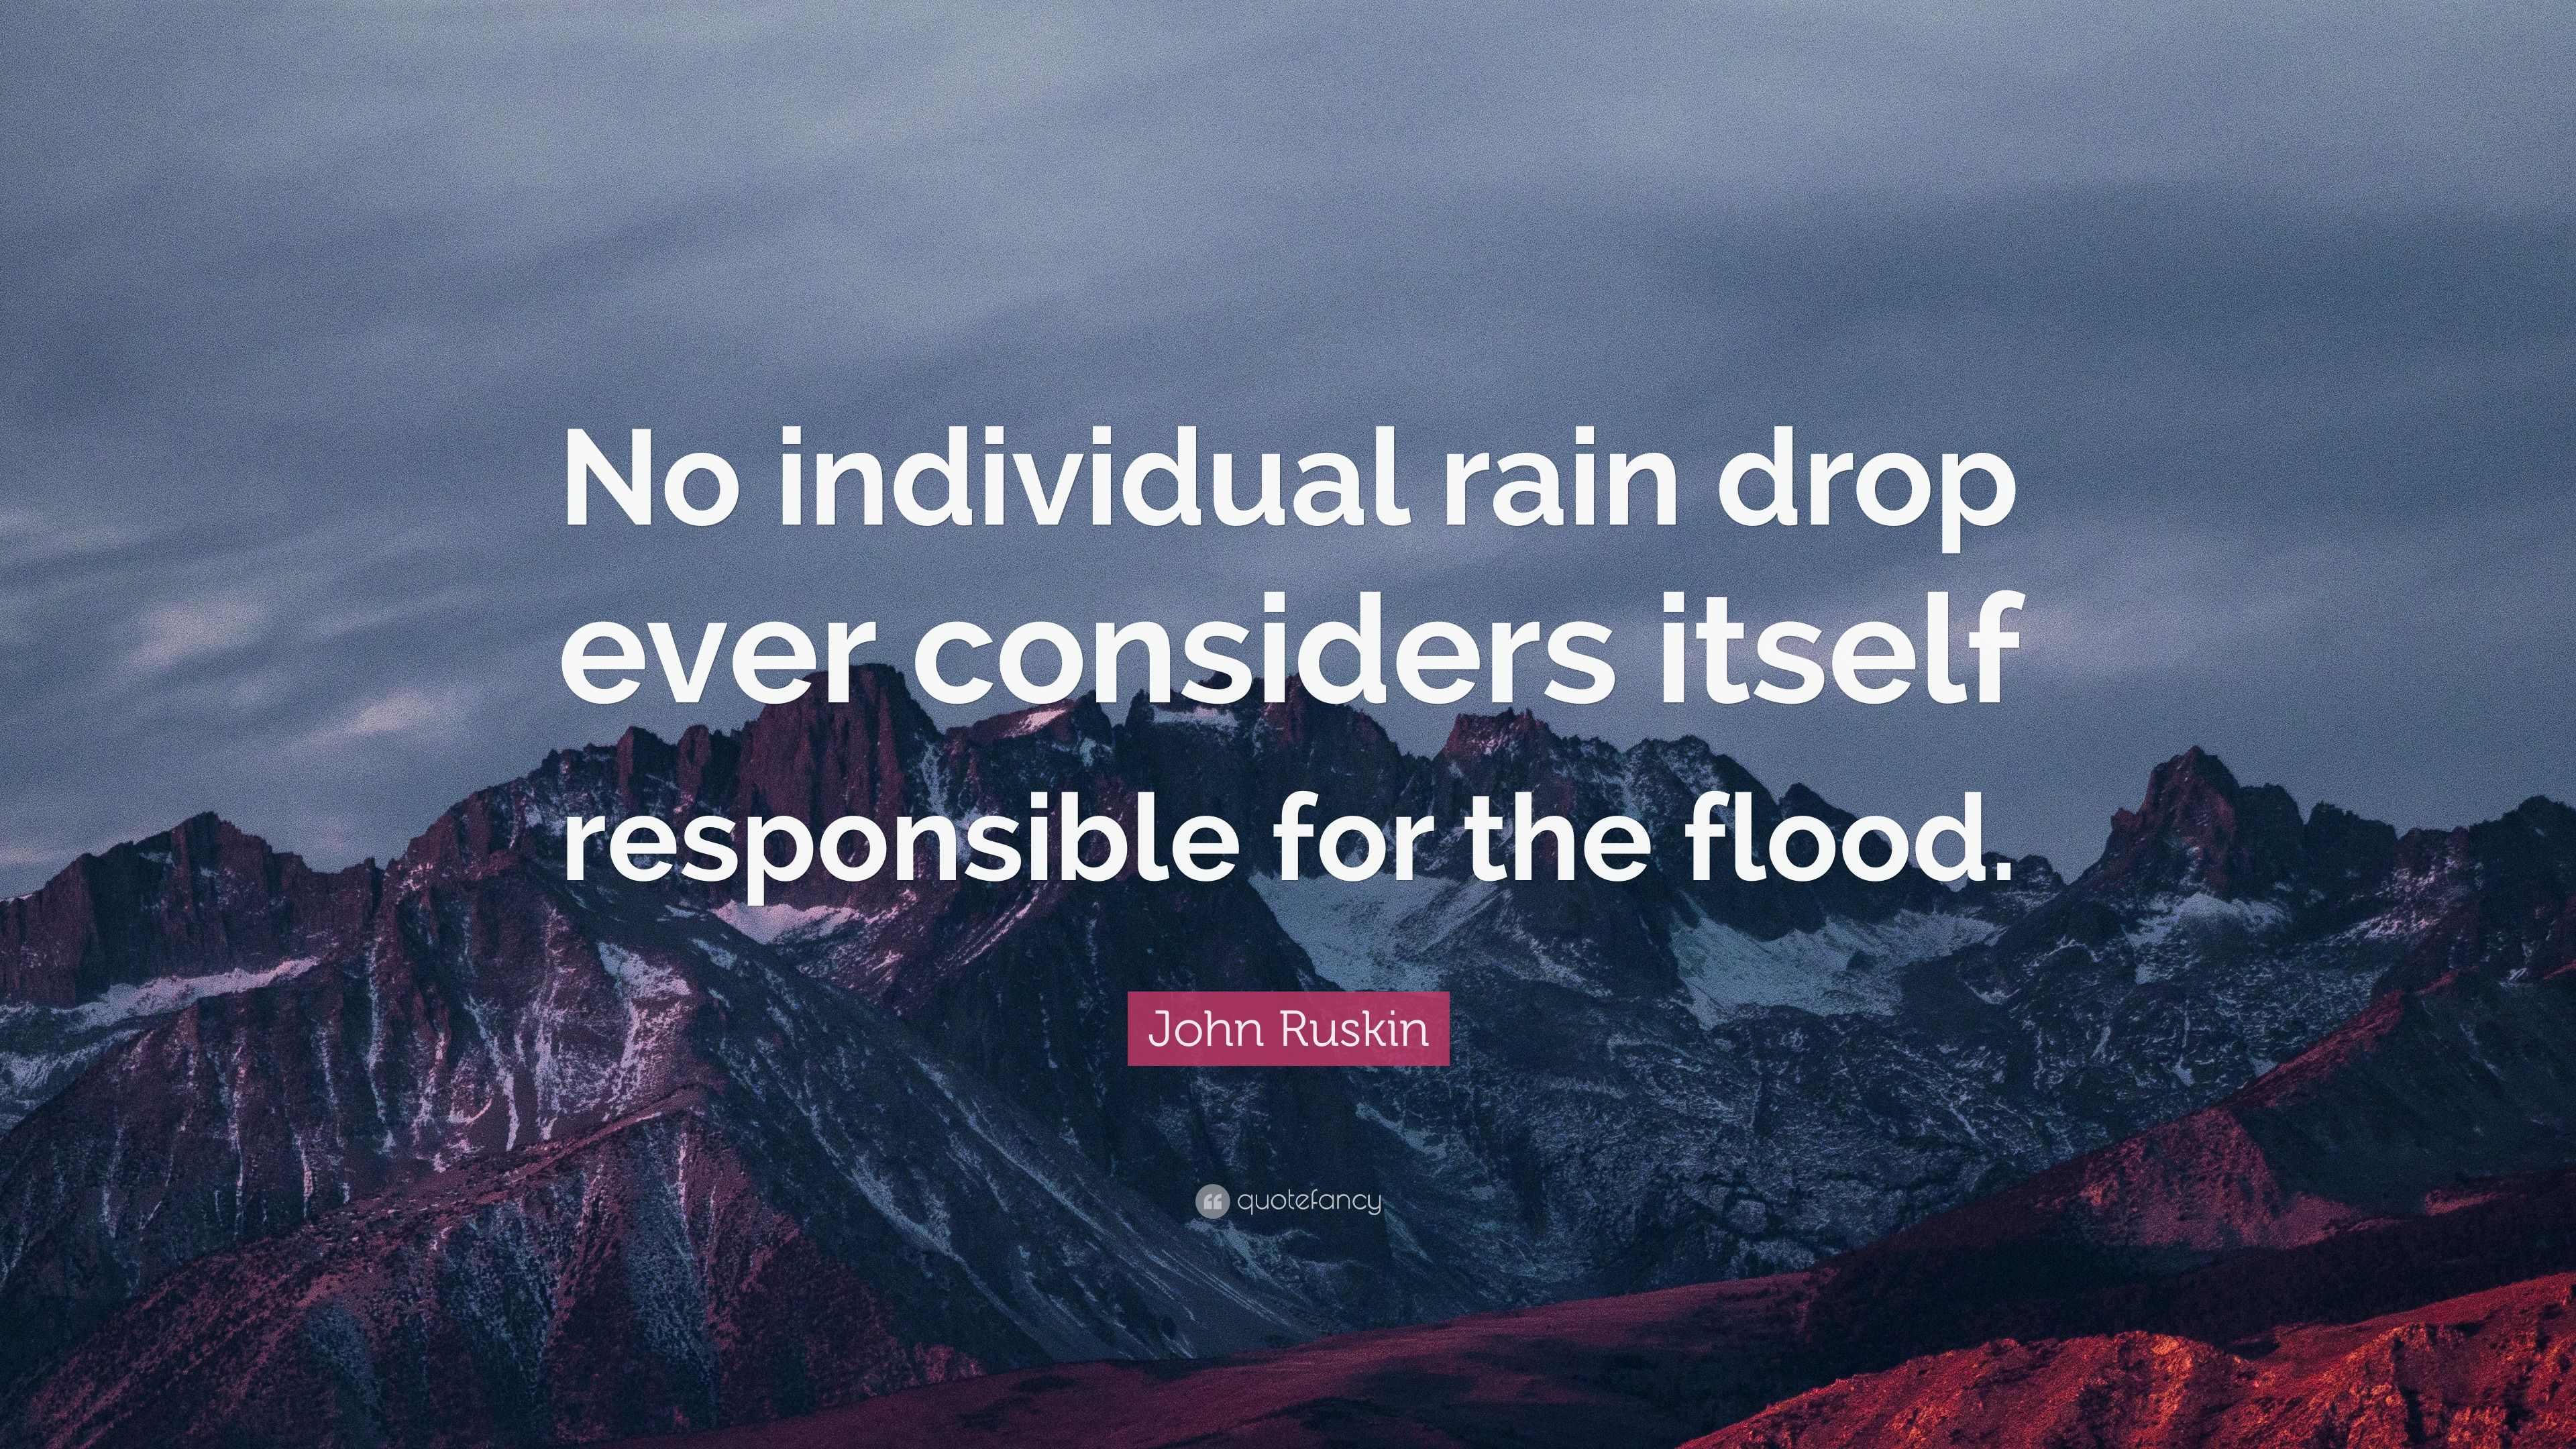 No Single Drop Rain Responsible Flood « 3 beste Aufstellungsorte